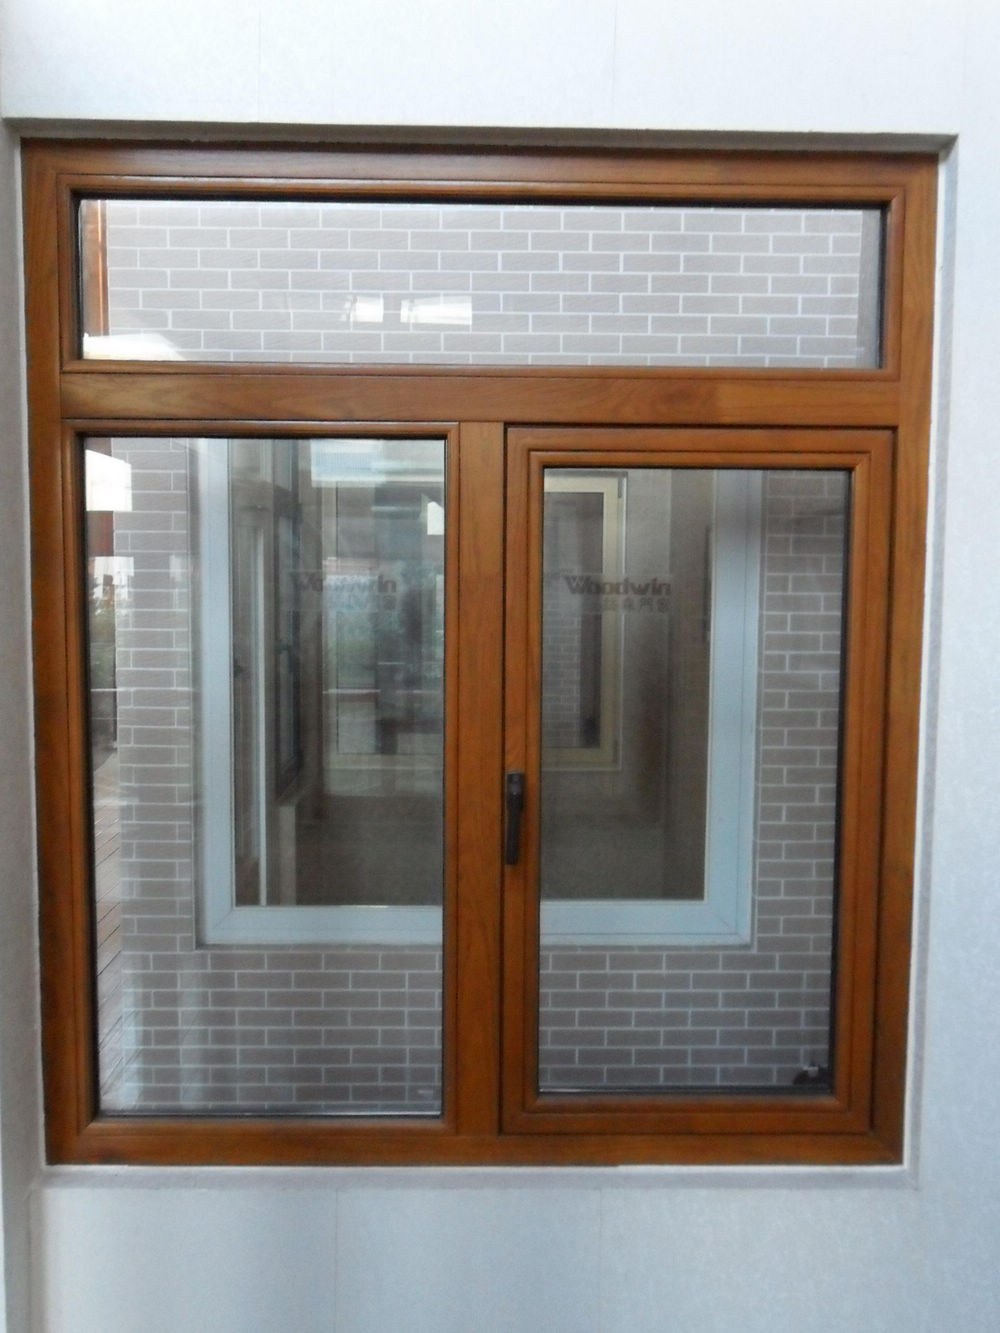 Aluminum Clad Wood Framed Window Bing Images